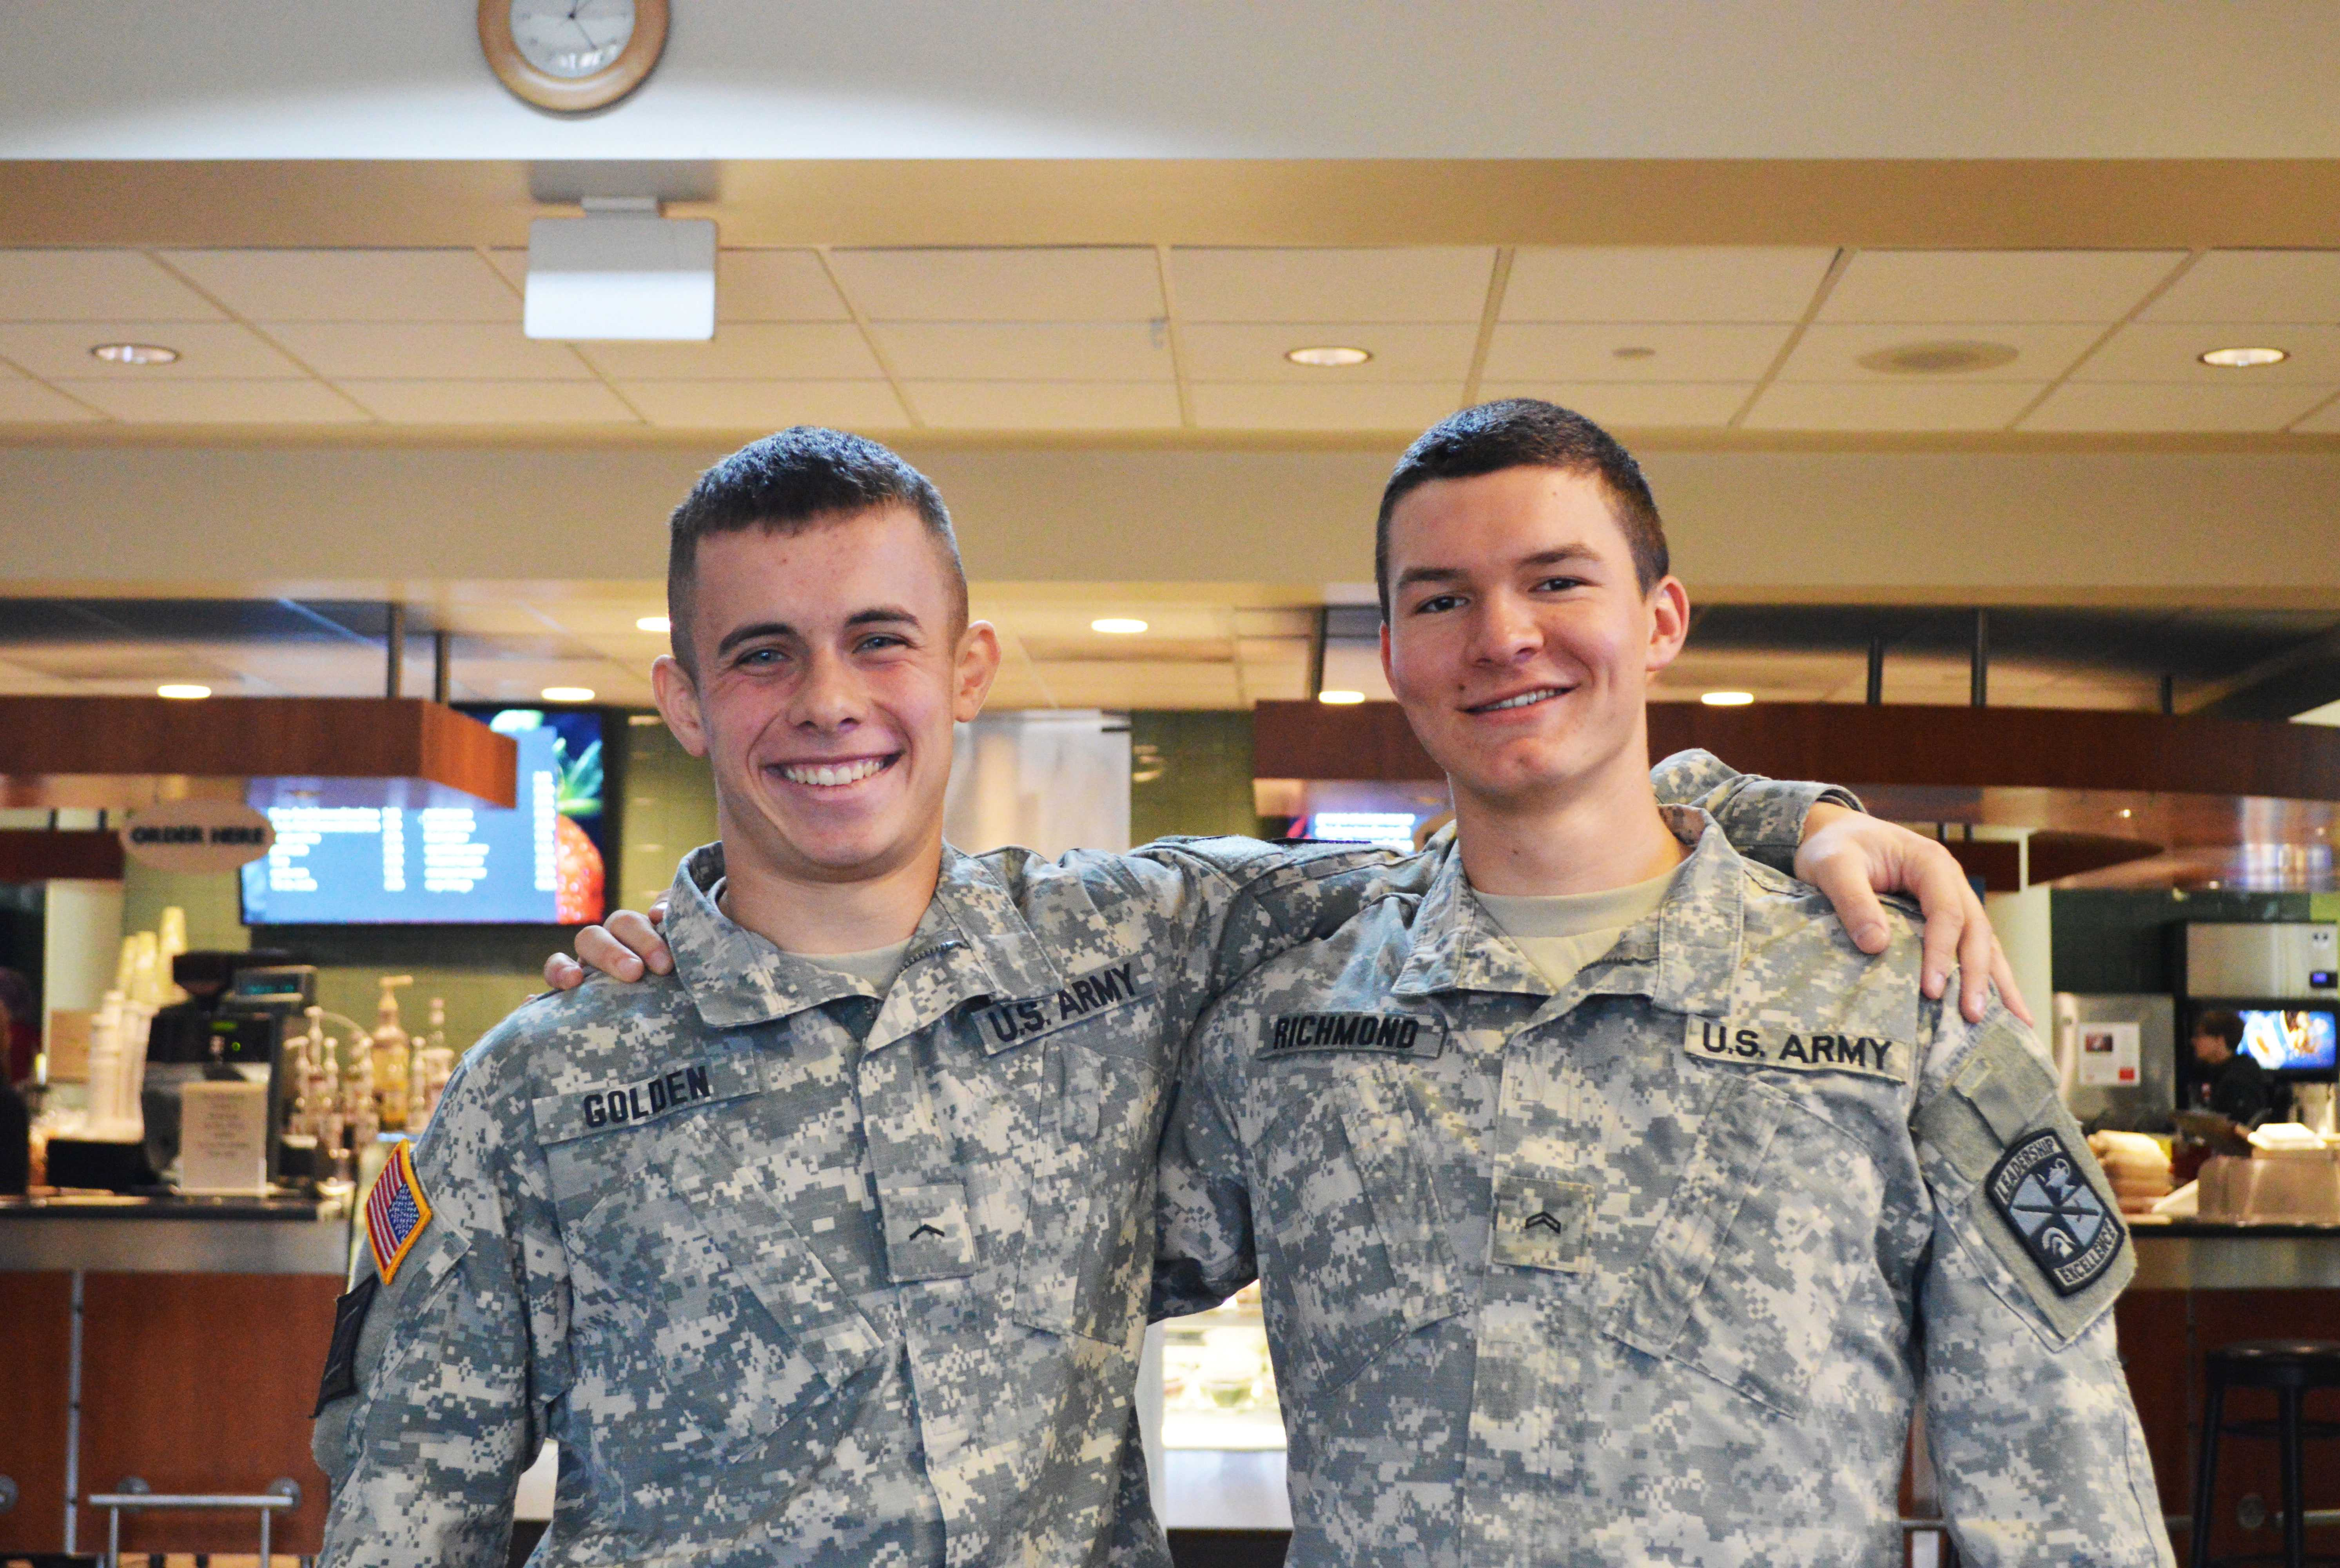 Levi Golden '20 and Sam Richmond '19 suit up every Wednesday as part of their ROTC program. Both are involved in varsity athletics at Mac in addition to their ROTC commitments. Photo by Rajnee Persaud '19.